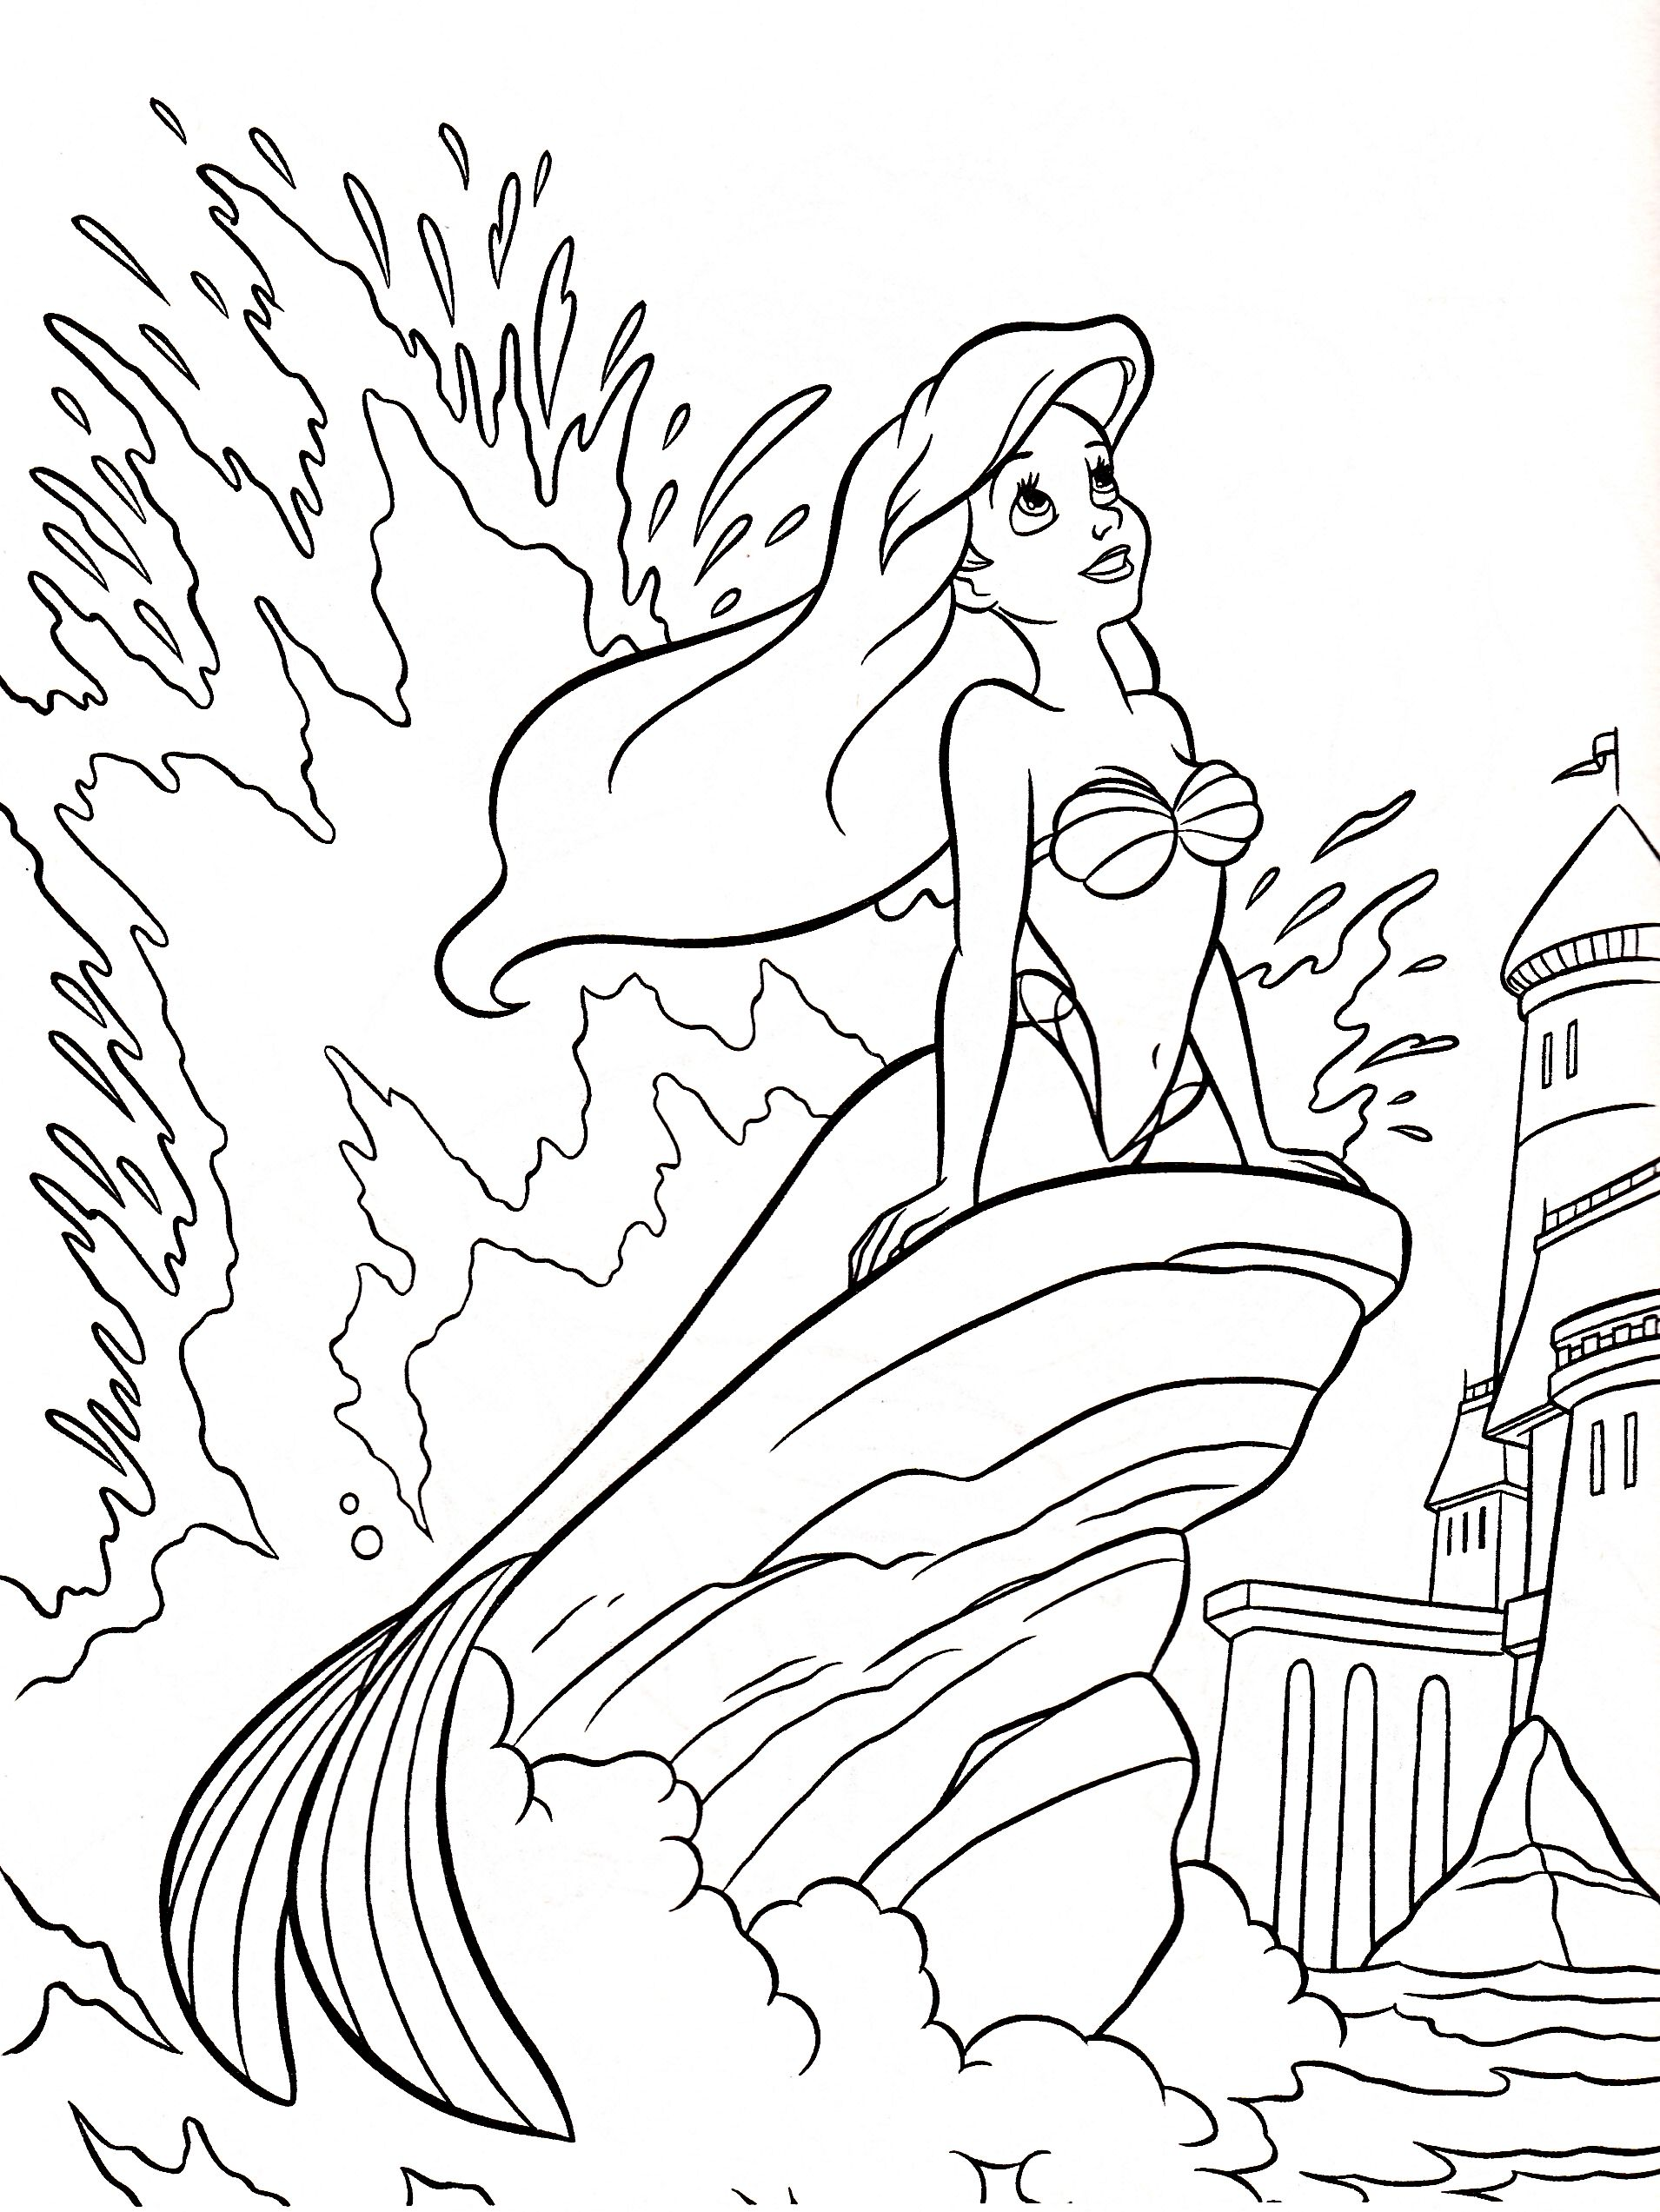 Disney princess coloring book for adults - A Is For Ariel Color Page Ariel Coloring Page The Little Mermaid